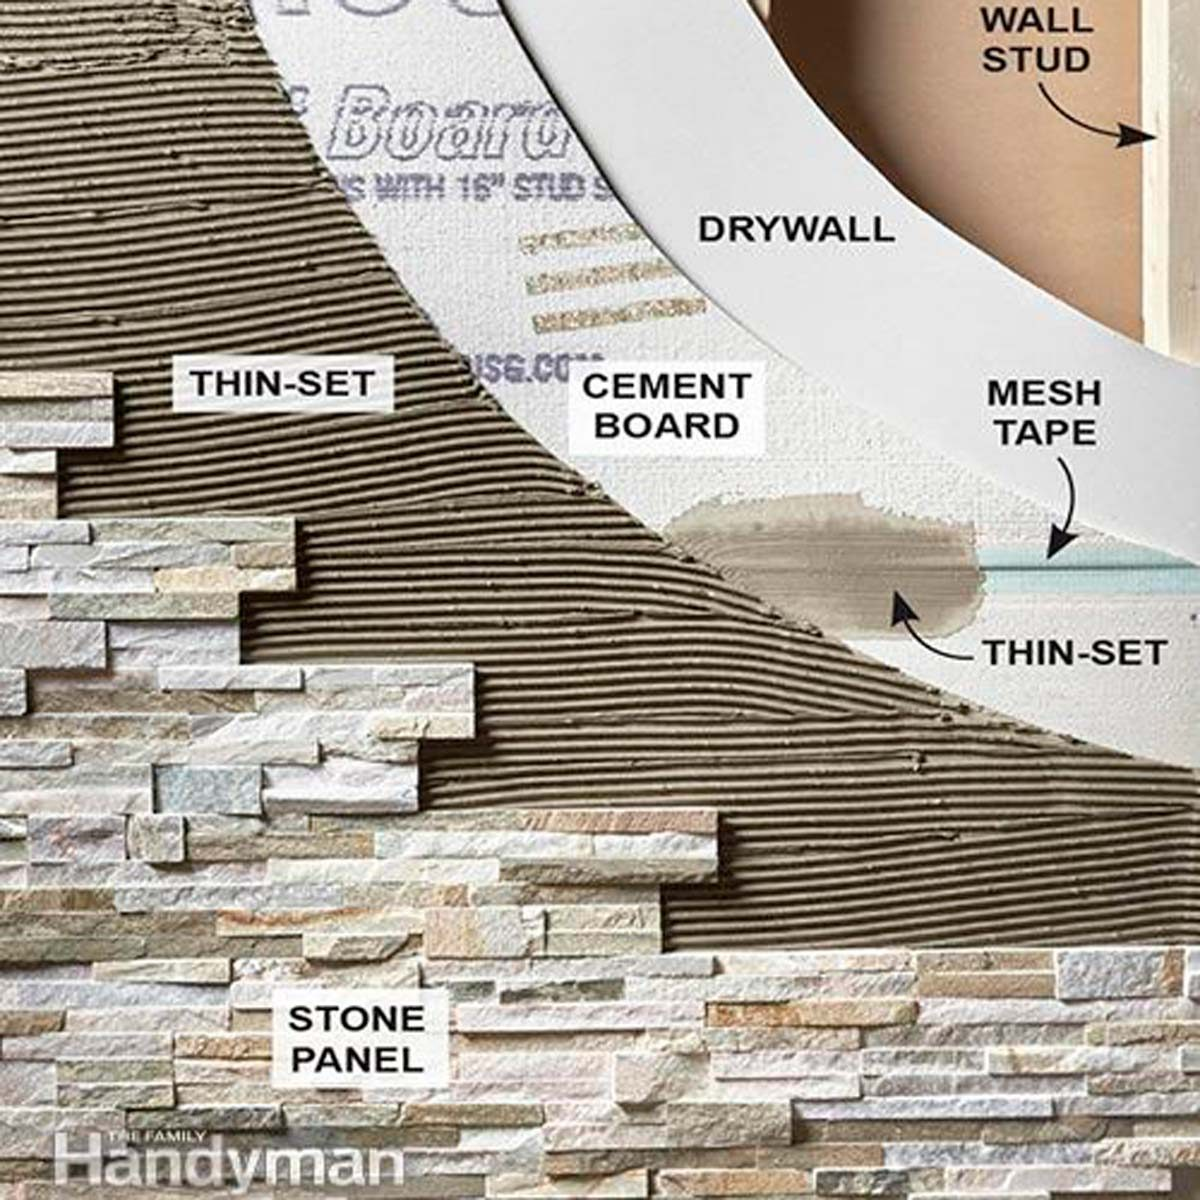 Installing Cultured Stone Fireplace Create A Faux Stone Accent Wall Using Faux Stacked Stone